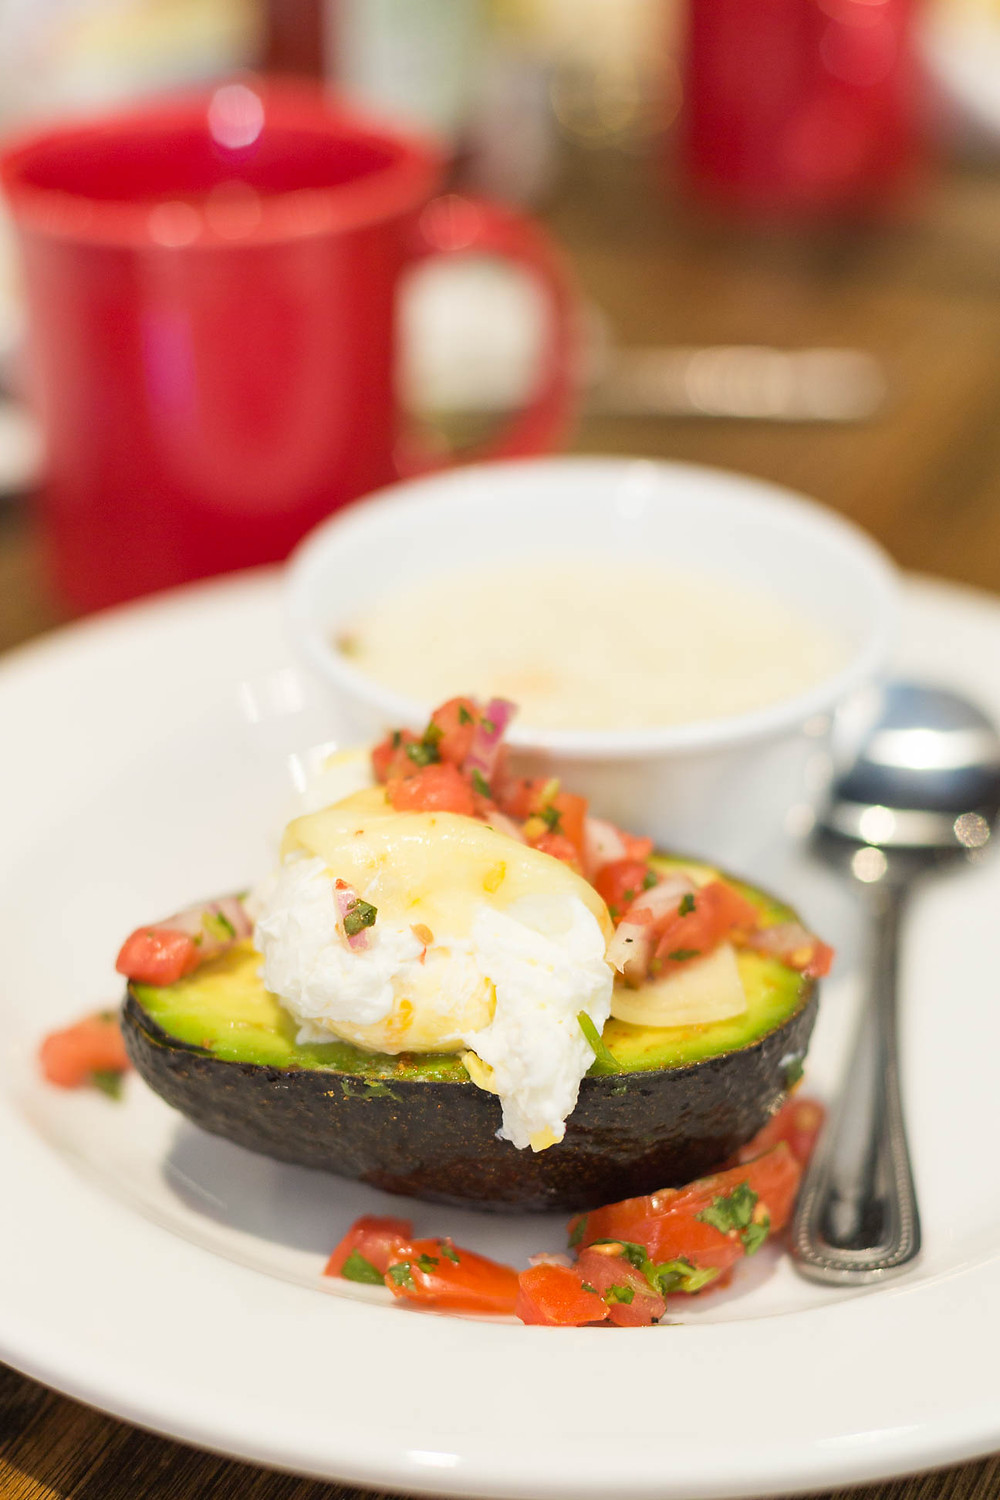 Avocado benedict with grits at Famous Toastery in Greenville SC